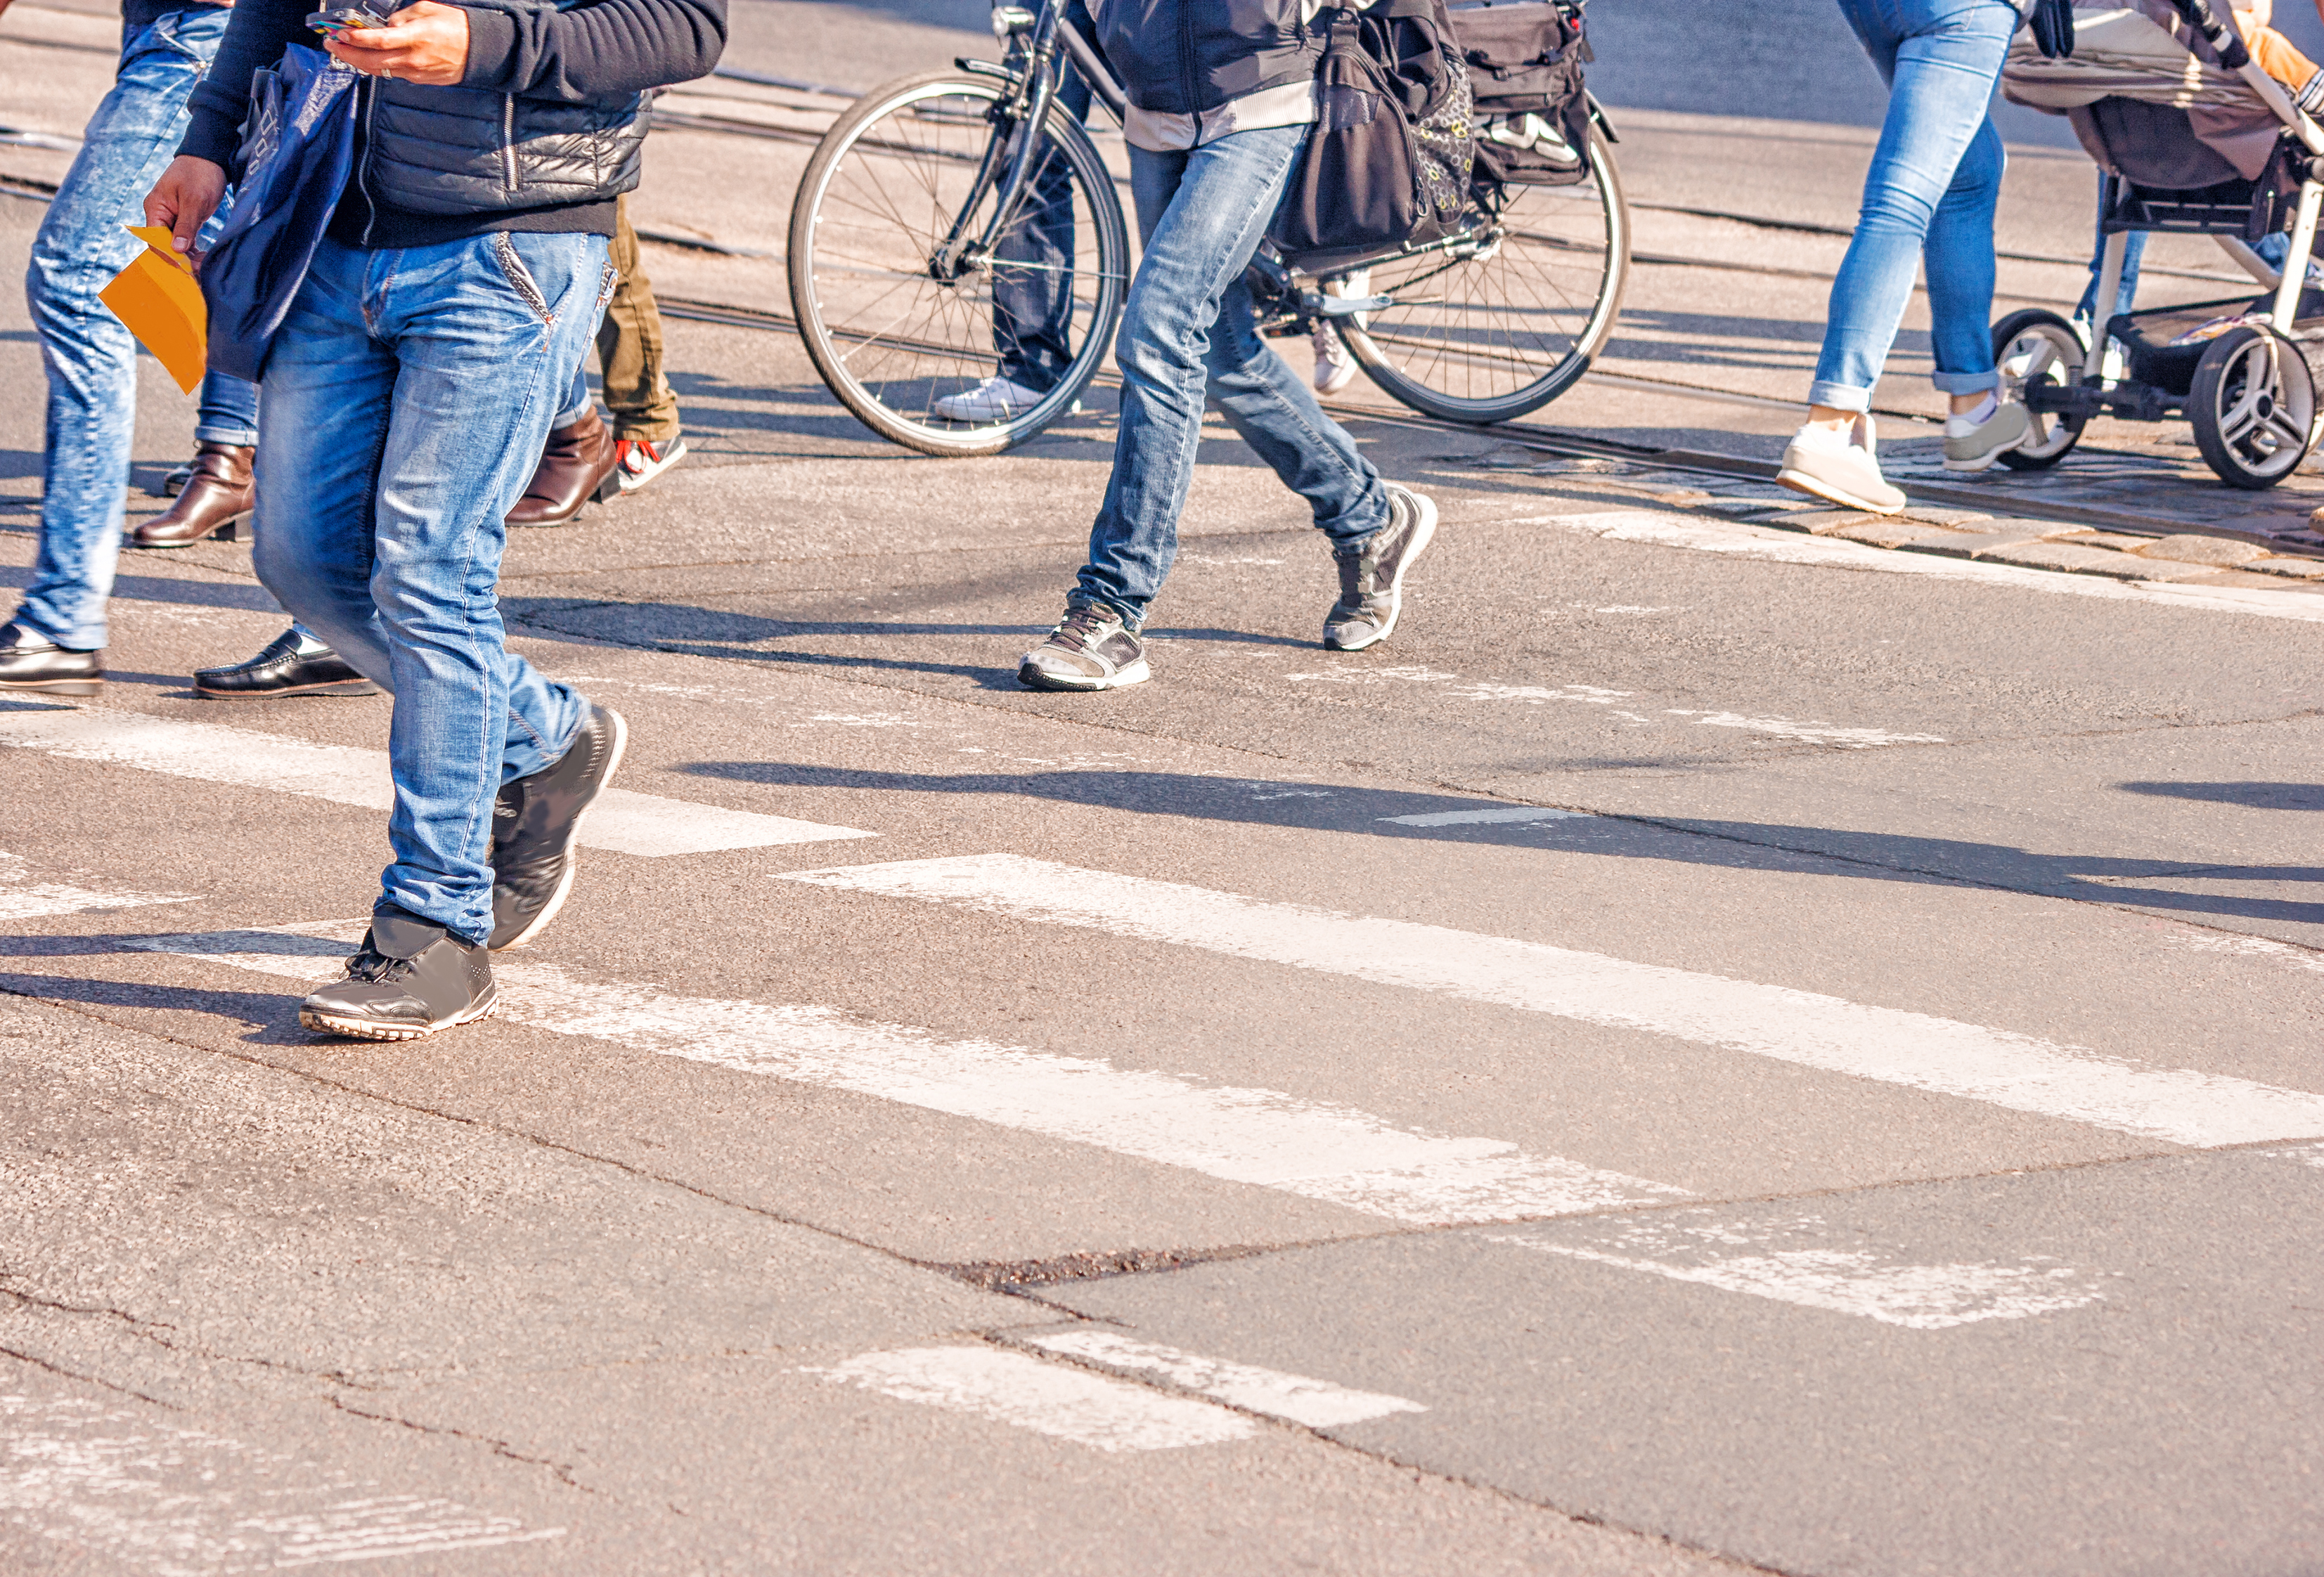 People crossing at a crosswalk show a variety of transportation modes, including walking, biking, and pushing a stroller.